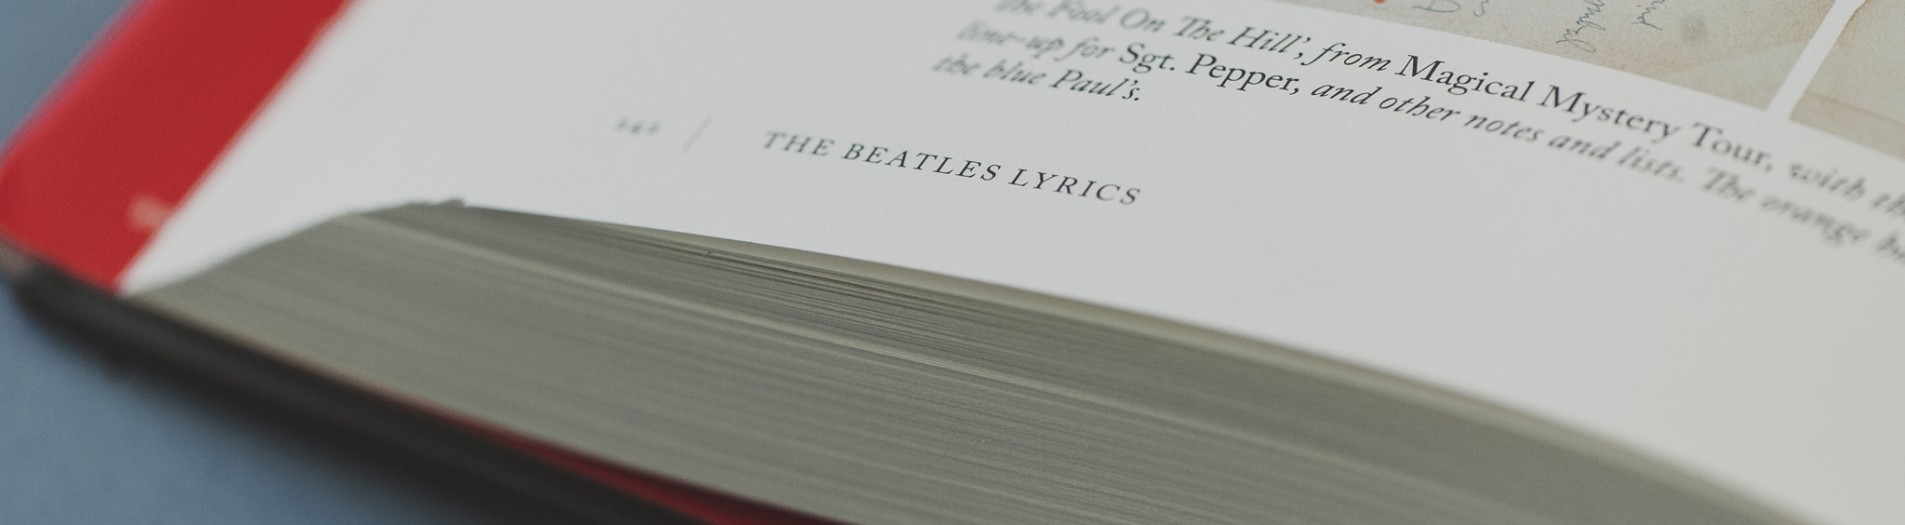 the great story of the beatles essay The beatles were an extremely popular and influential group in rock n' roll my question is, why what drew thousands upon thousands of screaming fans to online essays thousands of essays online essay topics recent they will always be remembered as one of the biggest success stories in.